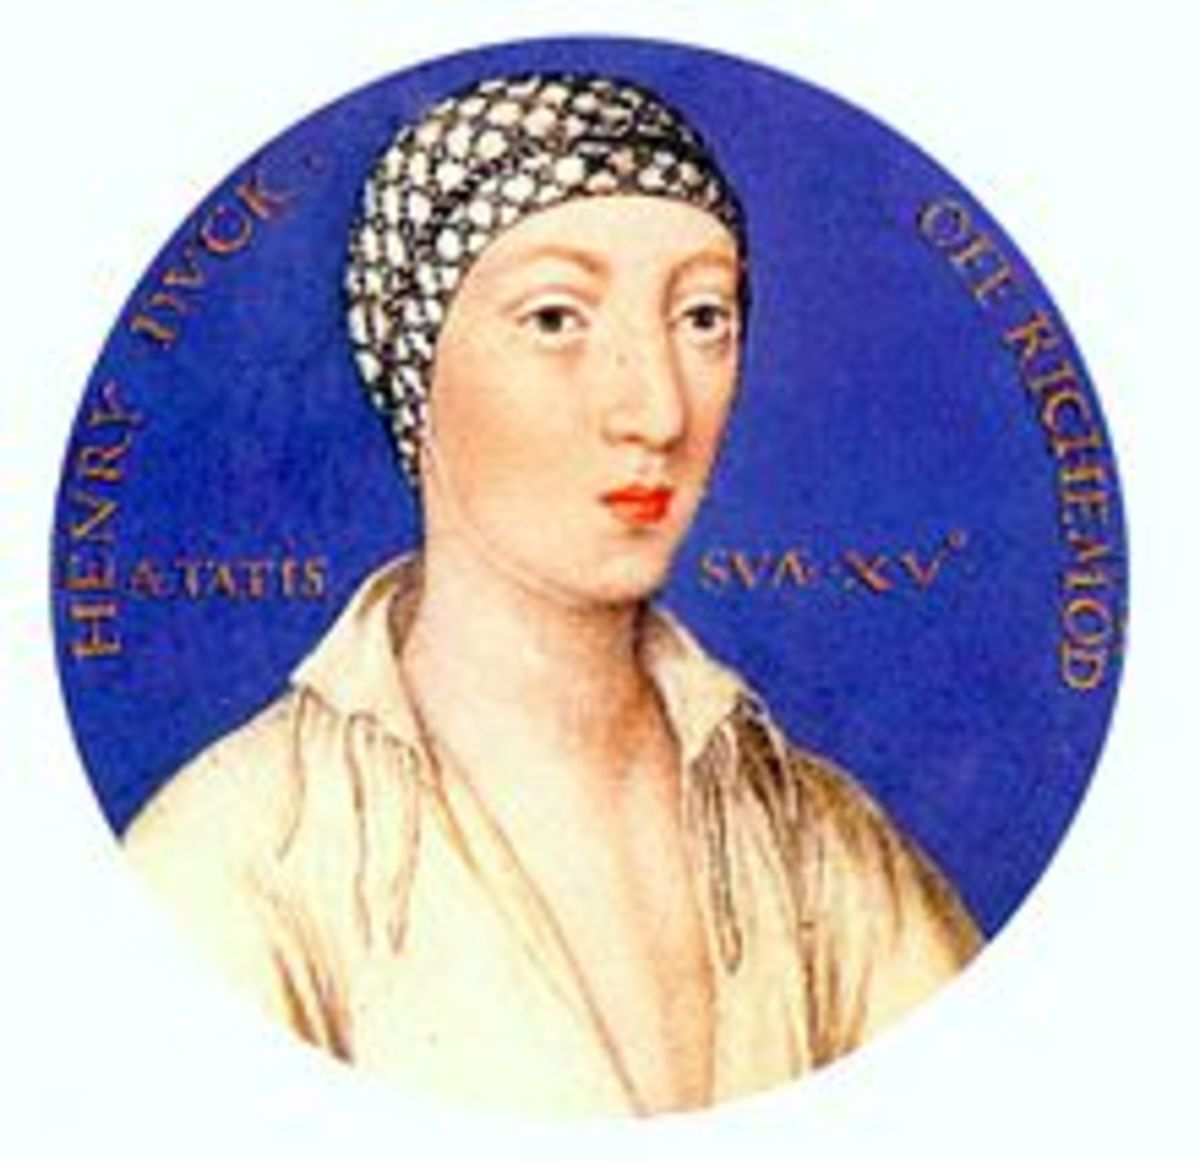 Henry VIII's natural son, Henry FitzRoy.